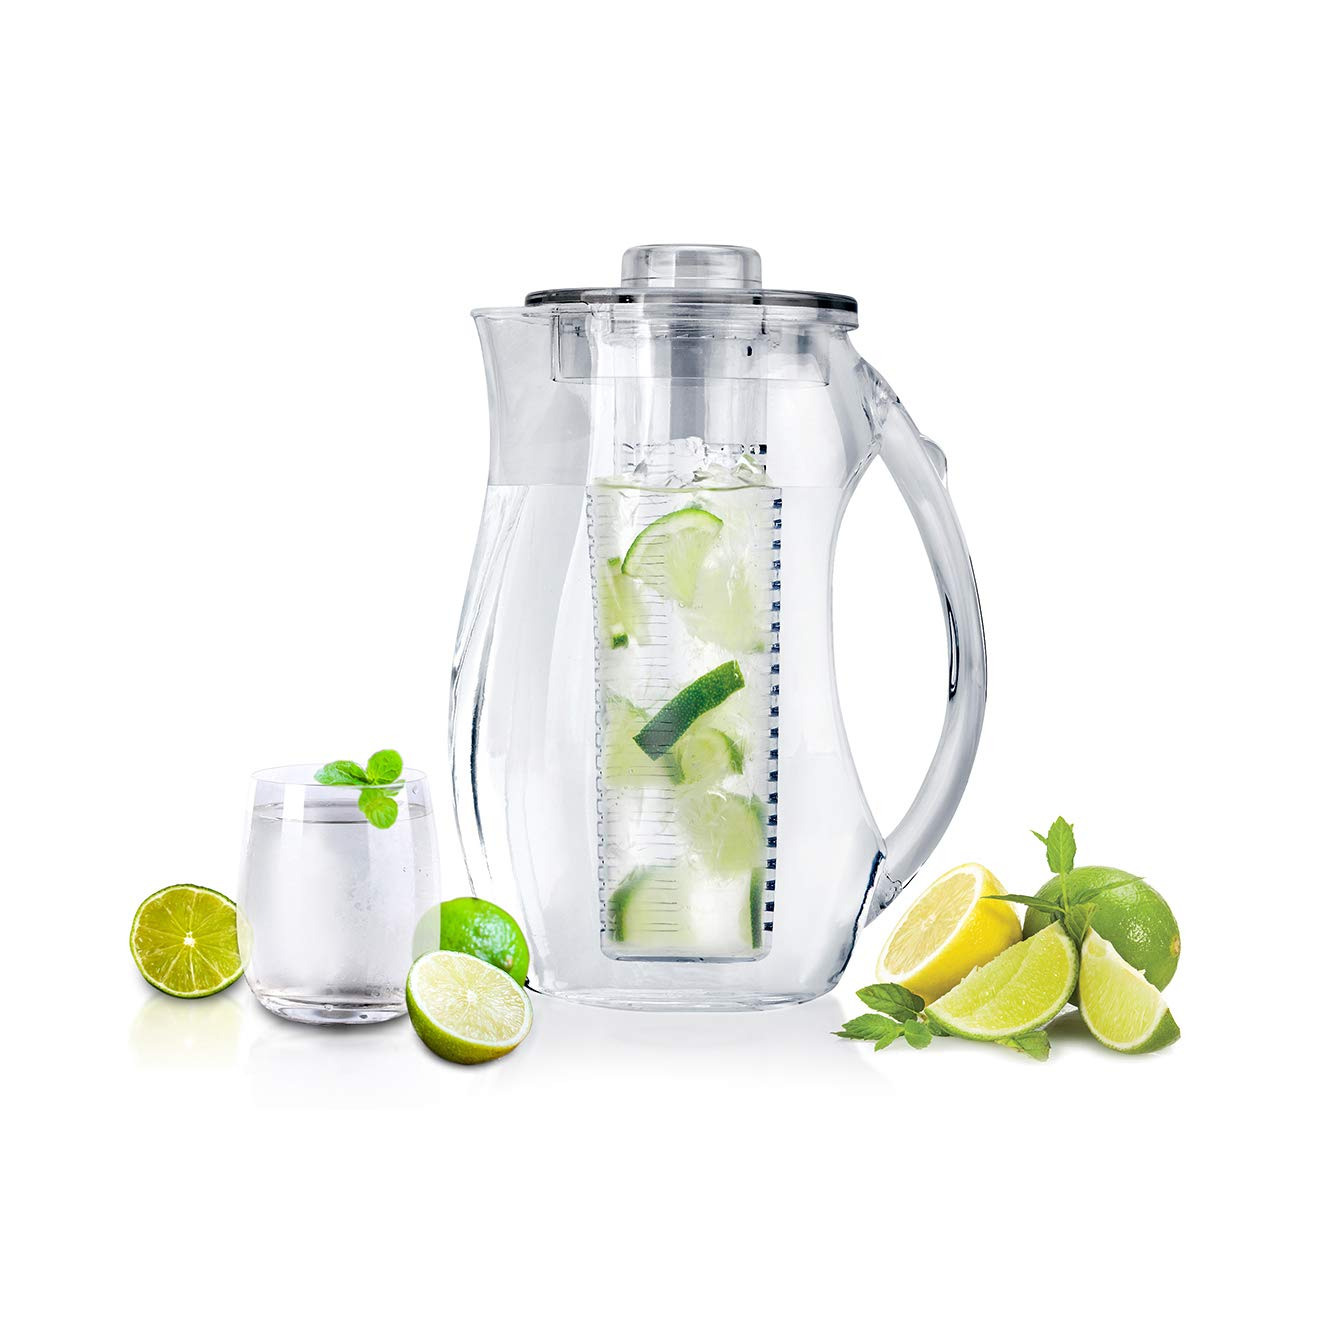 Infuze H2O Water Infuser Pitcher Fruit Infusion Flavor Jug 3+ Liter / 1 Gallon Largest 3 Gallon Spa Drinks Tea BPA free